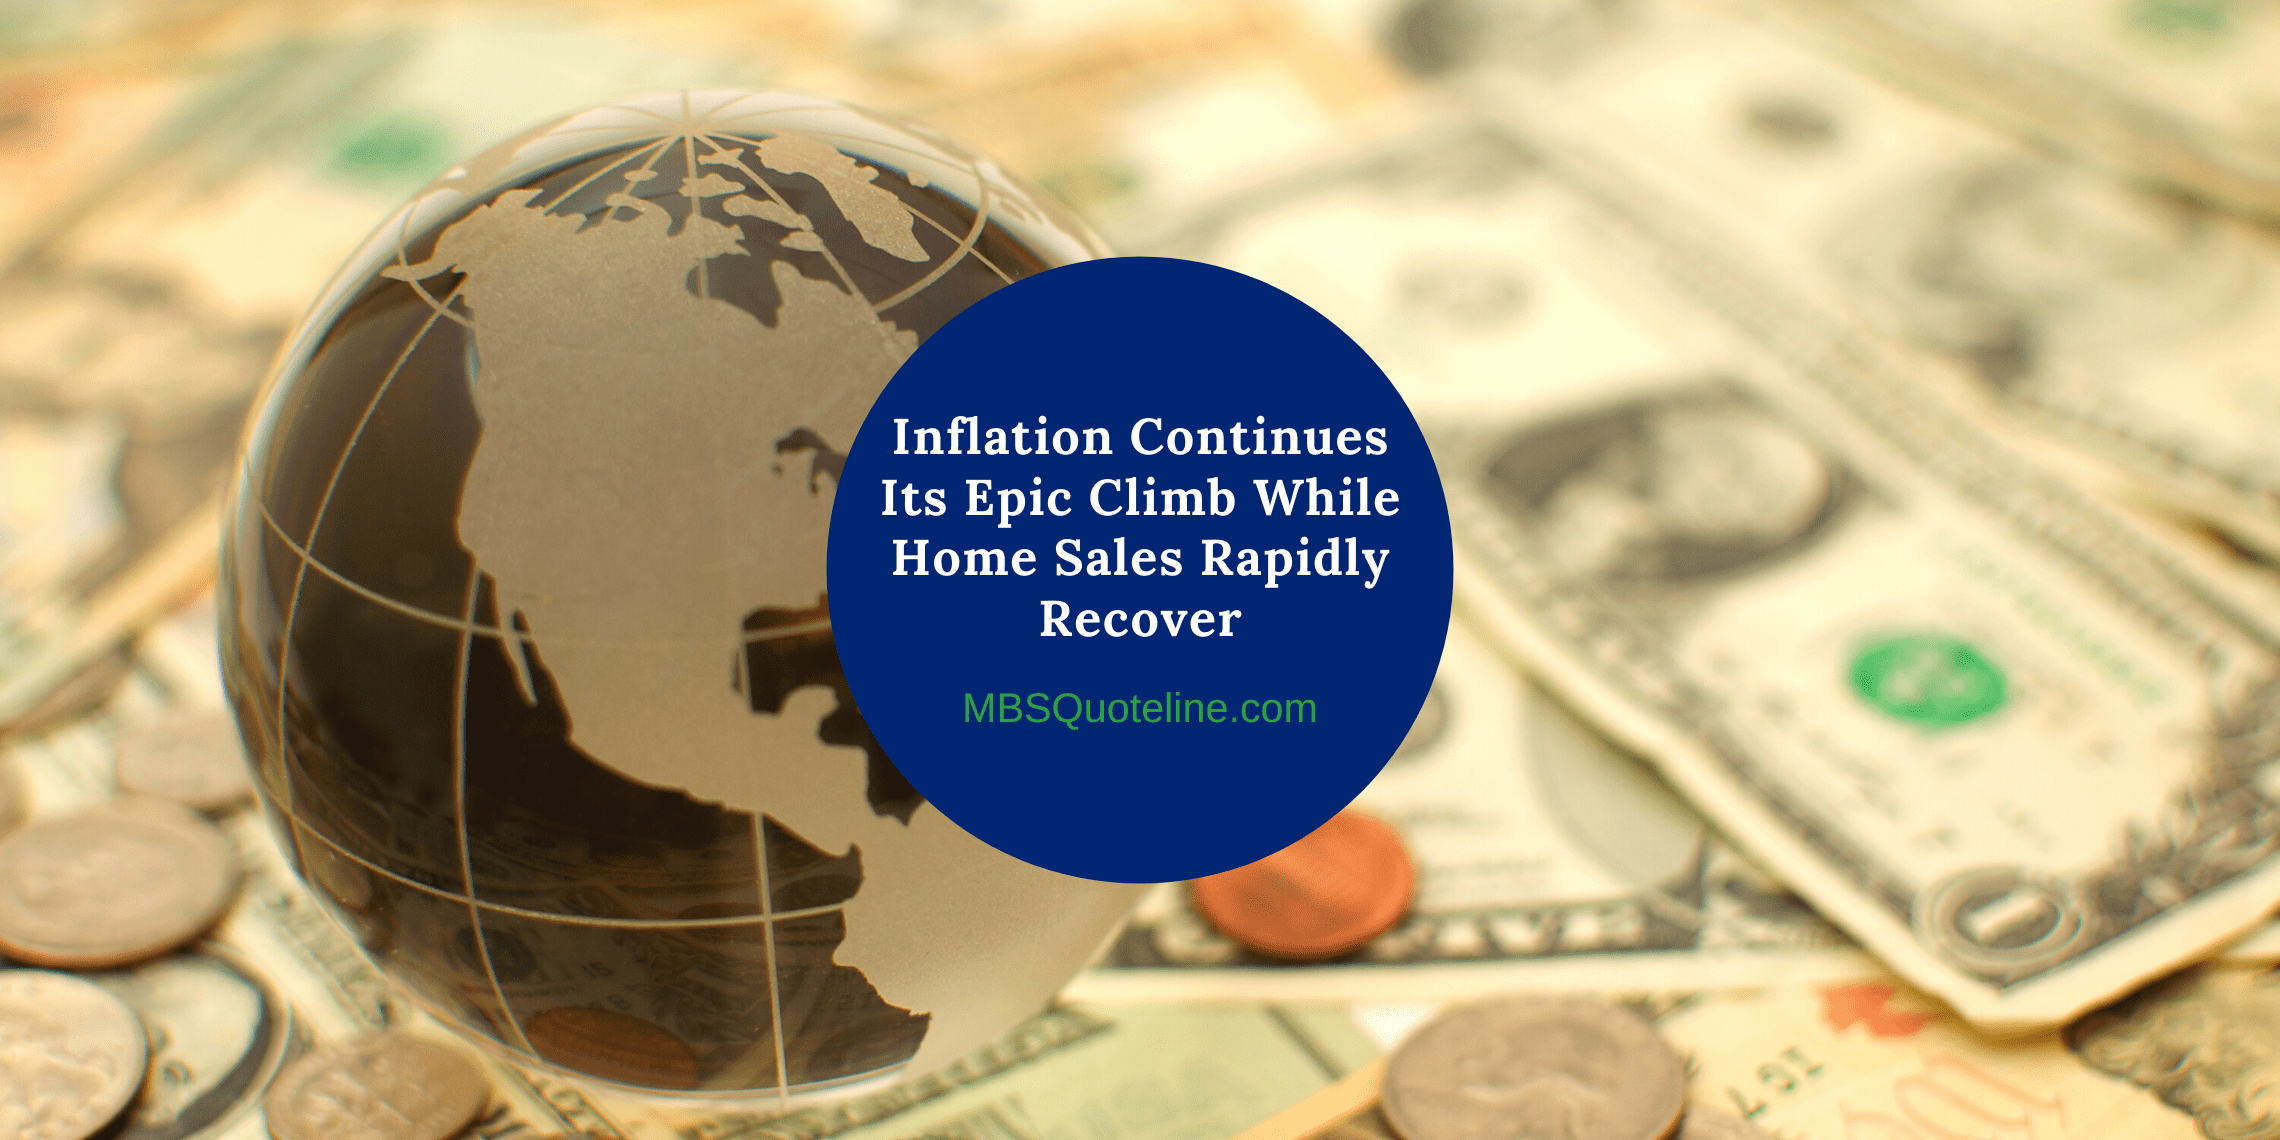 Inflation Continues Its Epic Climb While Home Sales Rapidly Recover featured mortgagetime mbsquoteline